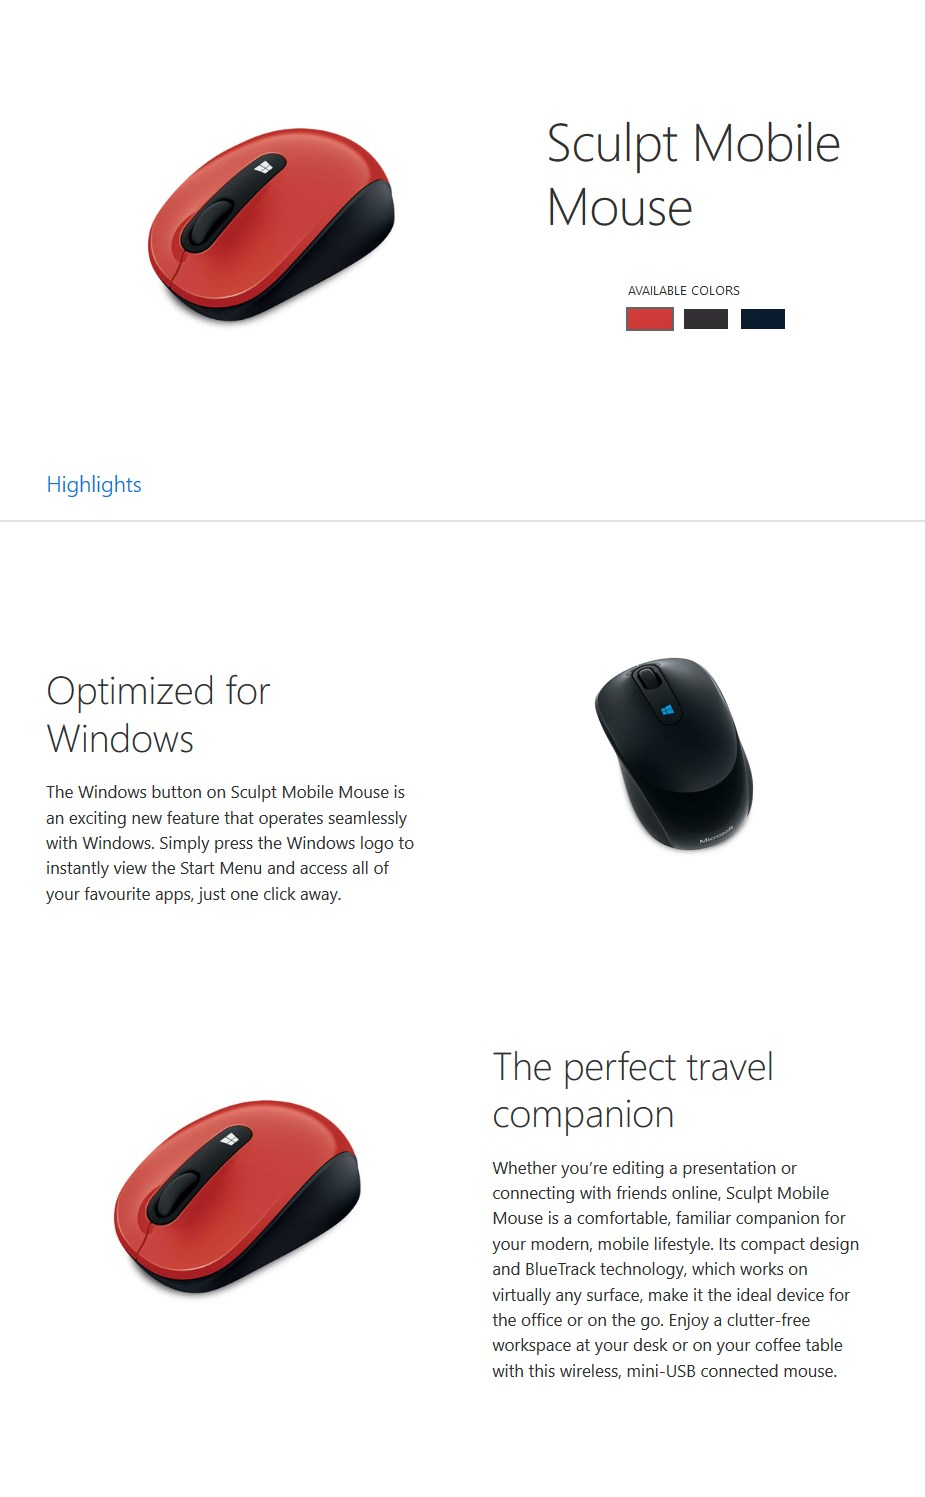 Microsoft Wireless Sculpt Mobile USB Optical Mouse - Red - Desktop Overview 1